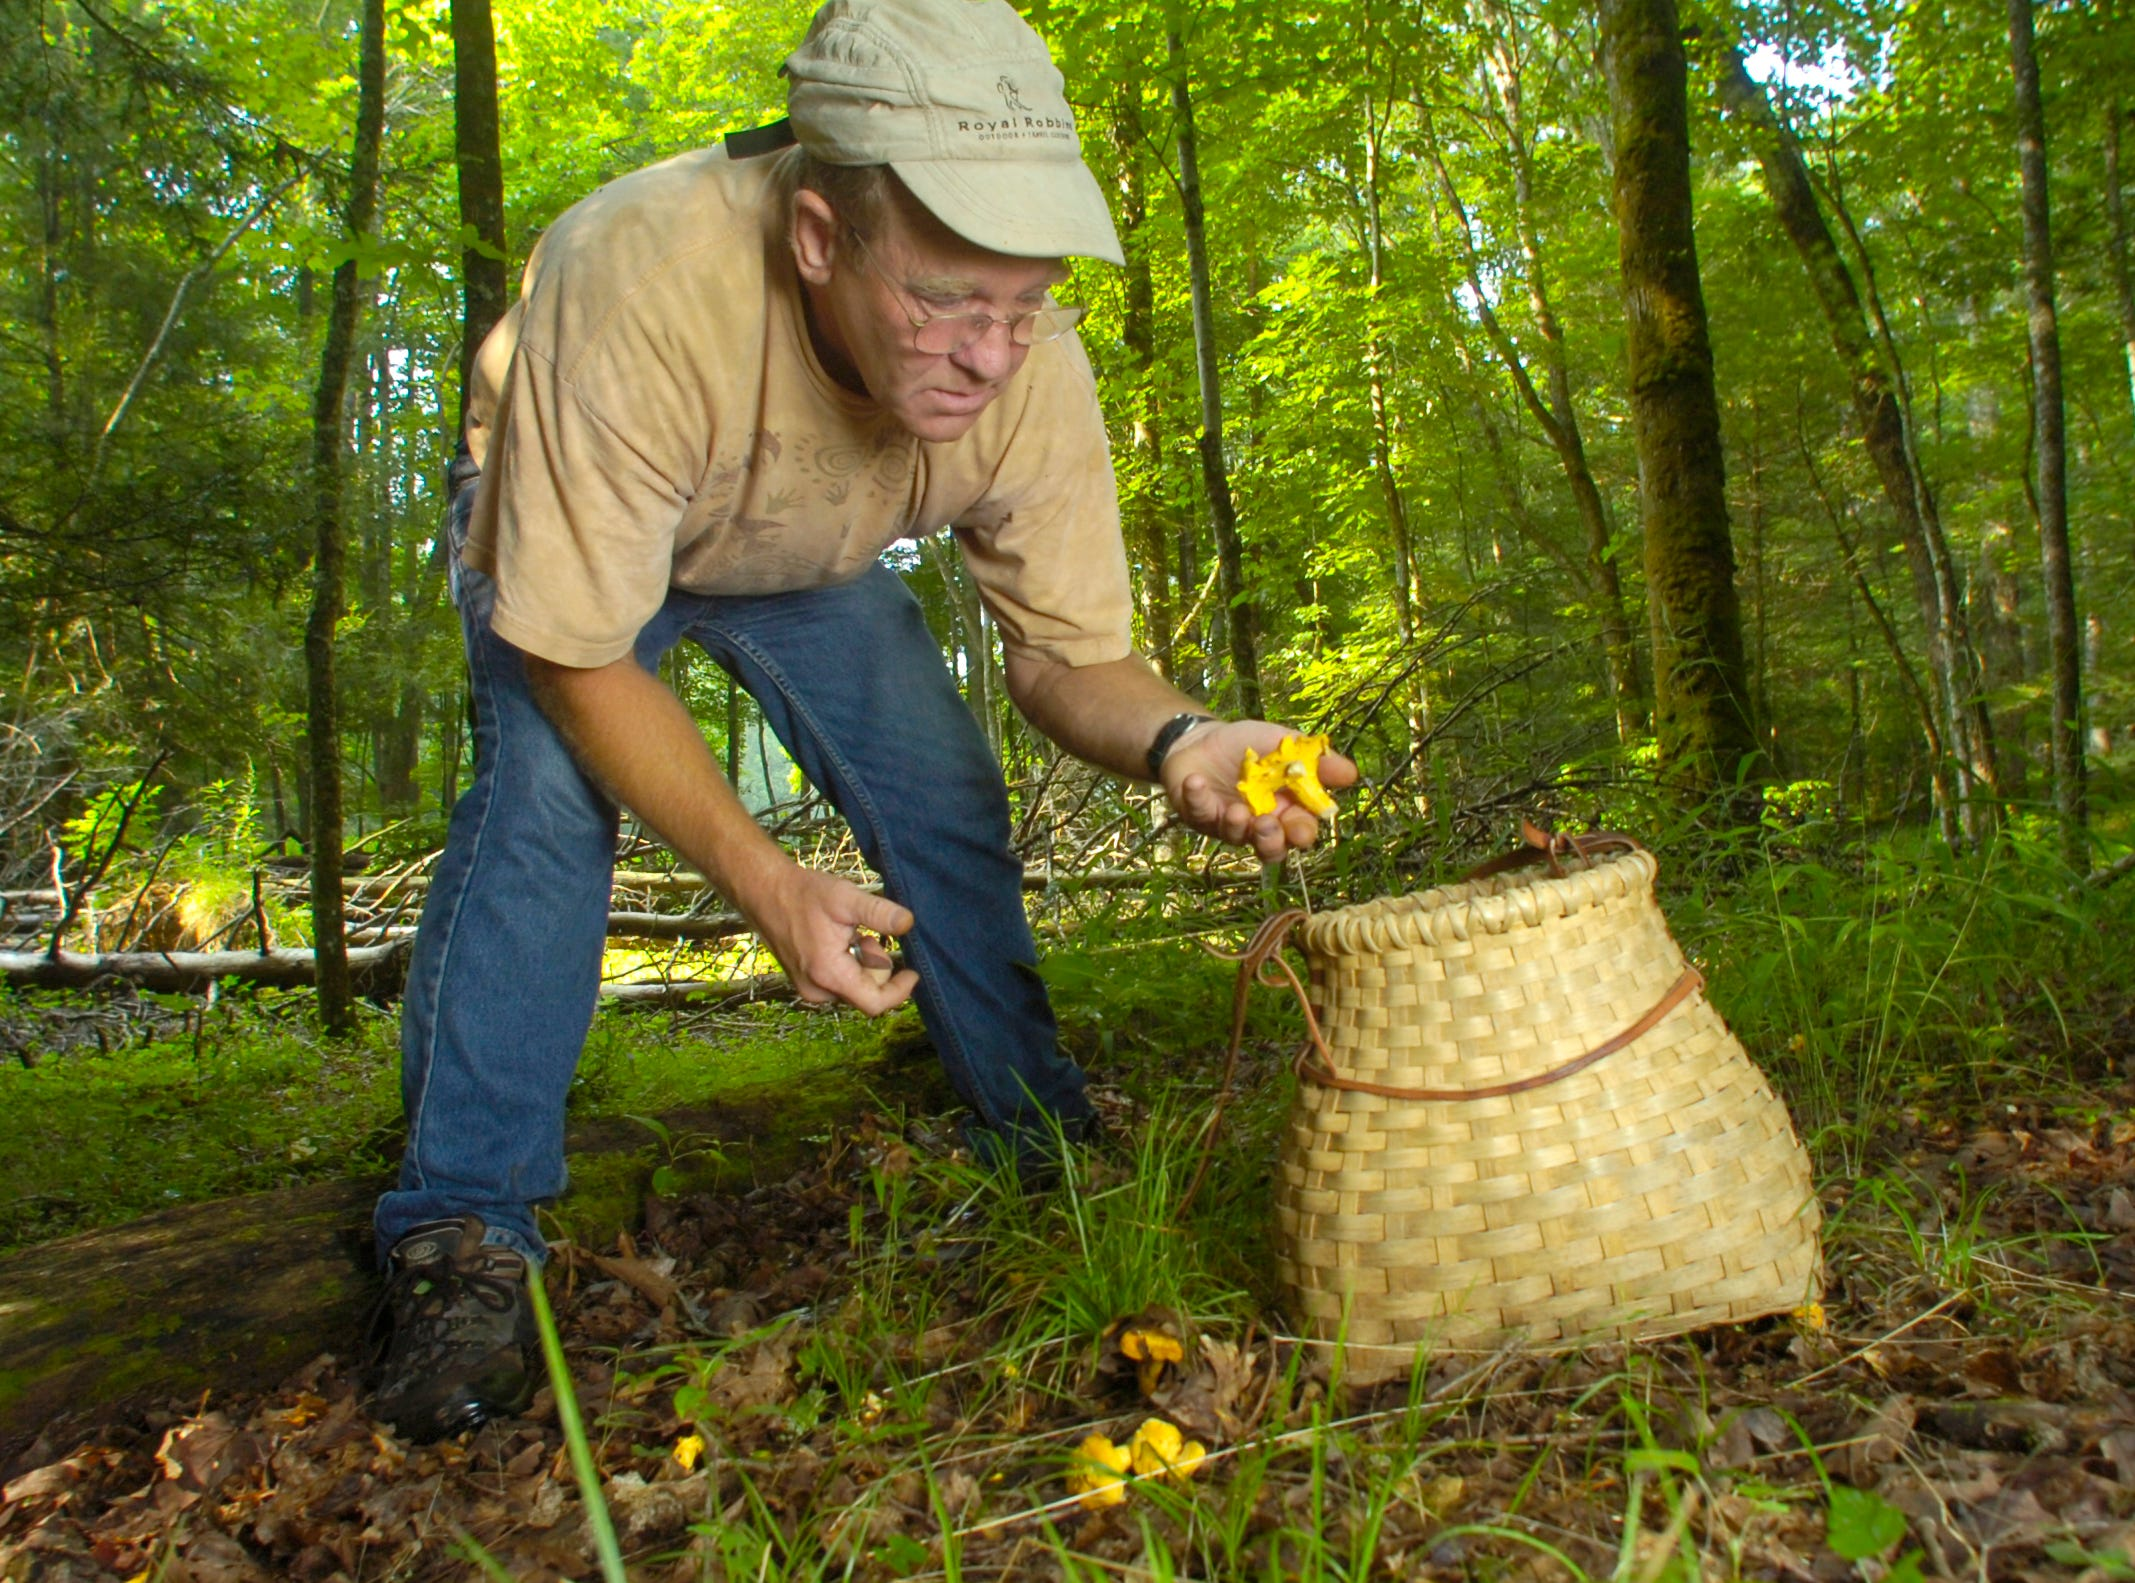 """chanterelle.PE#6017   News-Sentinel photo by Paul Efird---METRO---Naturalist Whitey Hitchcock collects chanterelles from the forest floor Tuesday in Cades Cove in the Great Smoky Mountains National Park. The choice, edible fungi are prized by chefs but it took Hitchcock a while to appreciate them. """"When I first starting eating them, I didn't like them, but they grew on me. They go real good with gamey food like elk and wild pig,"""" he said."""